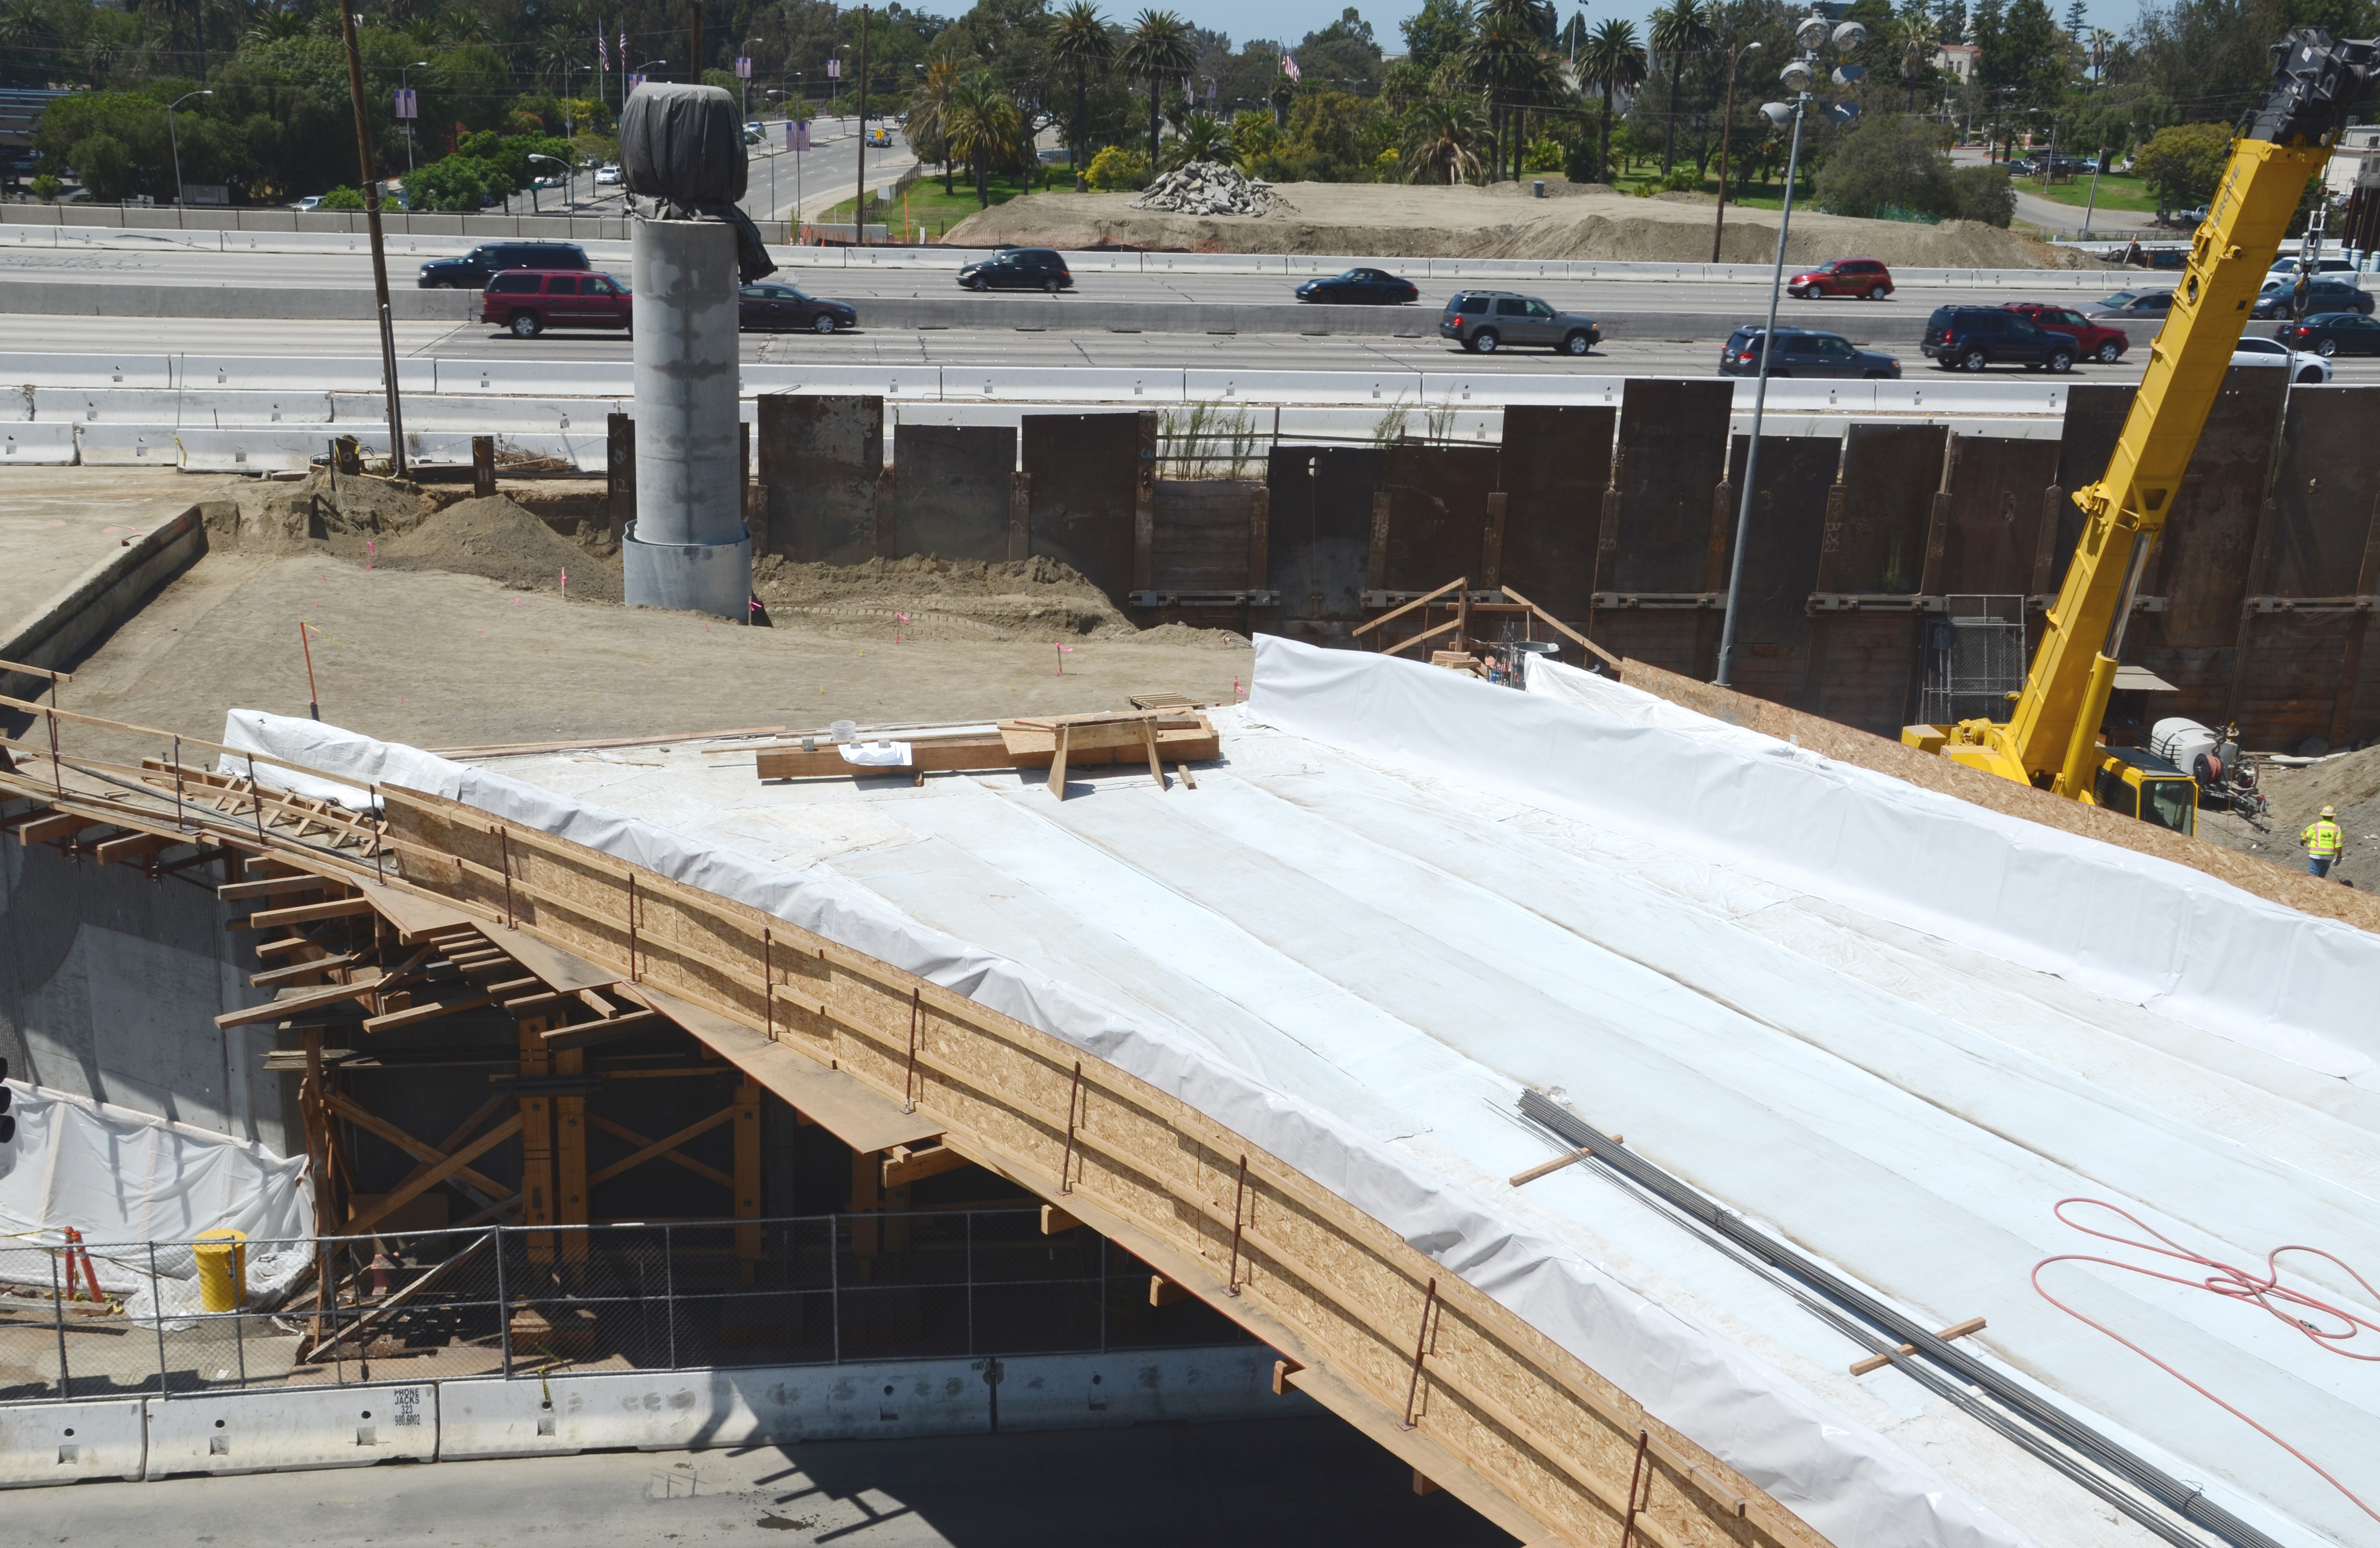 Looking west, this photo shows the bridge which will carry  the northbound I-405 traffic off to westbound Wilshire Bl.